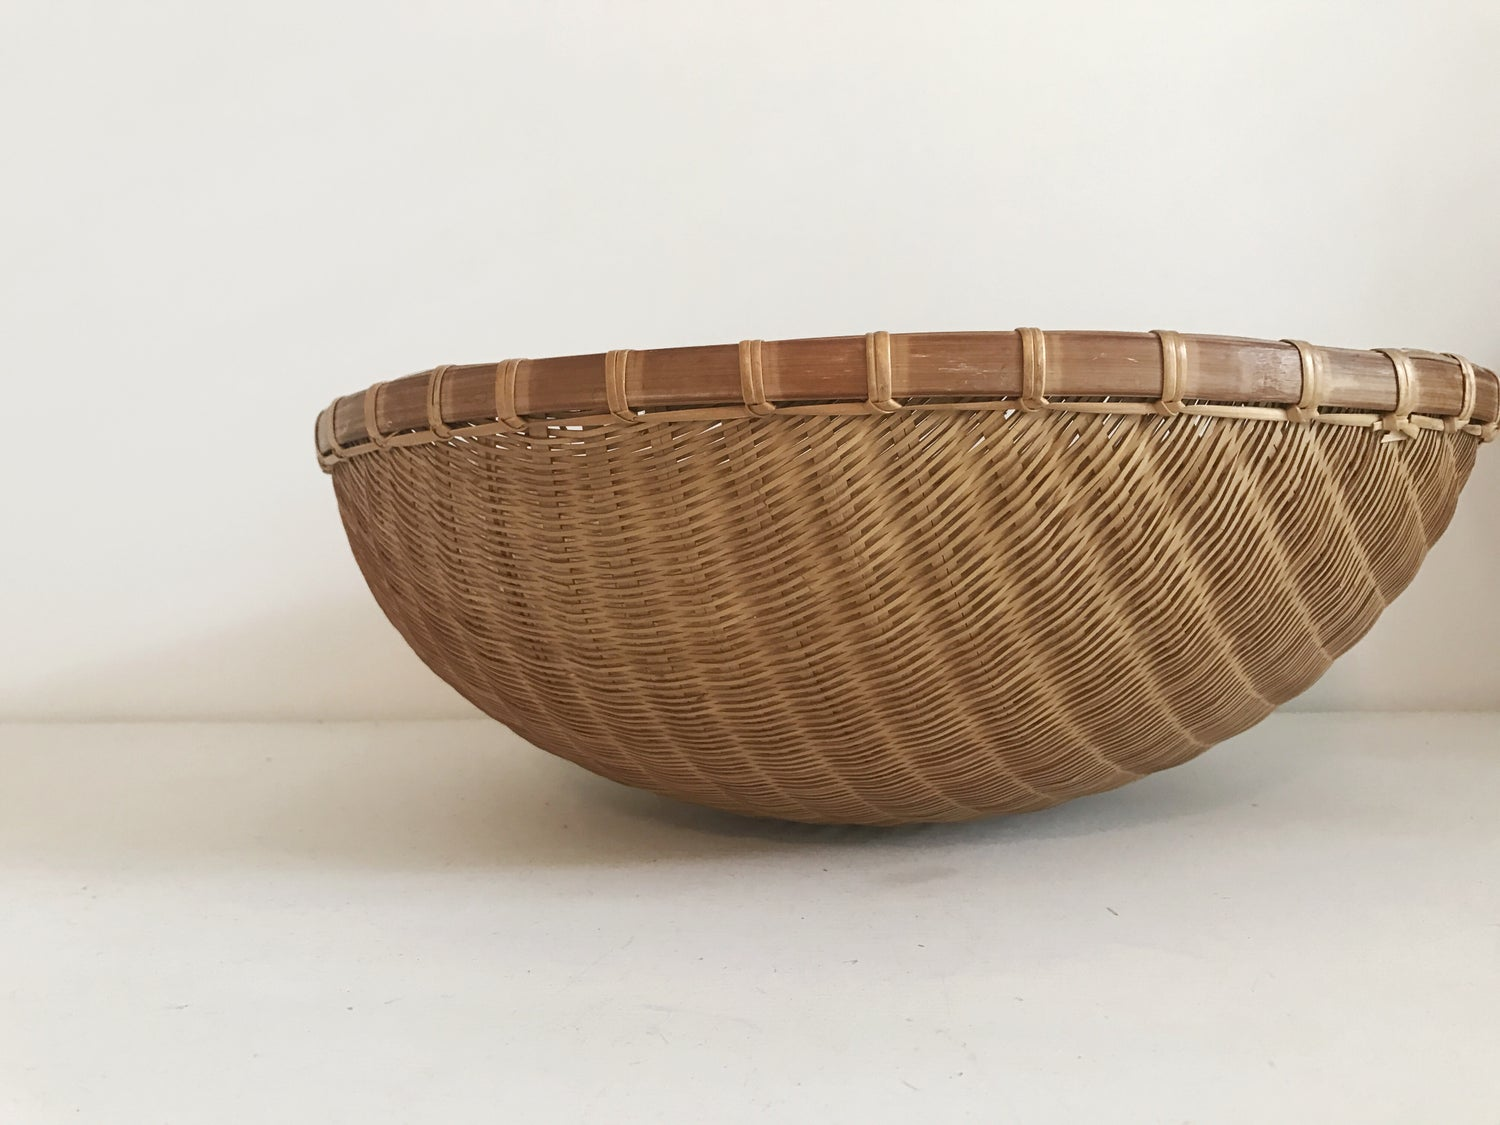 Image of Woven Fruit Bowl